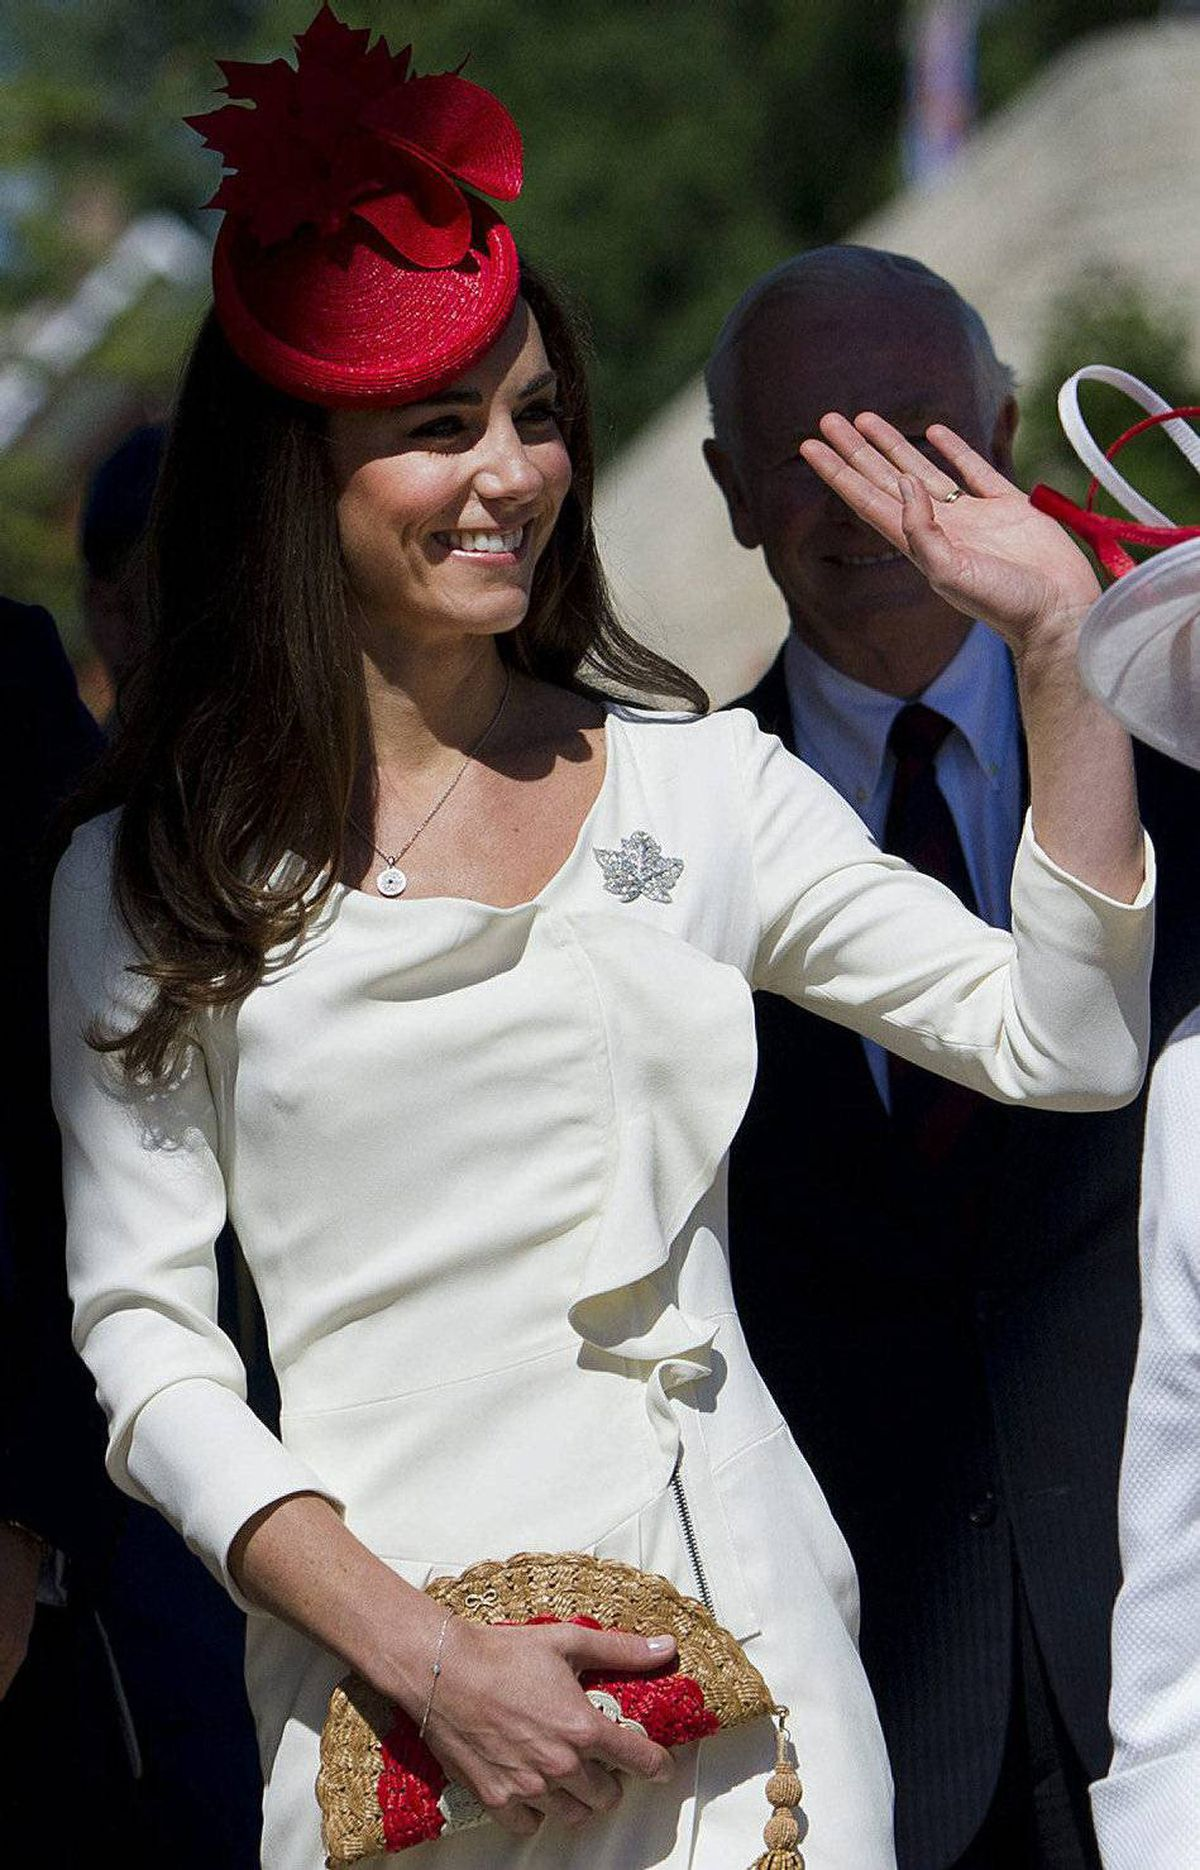 The Duchess of Cambridge waves to the crowd as she is accompanied by the Governor General's wife Sharon Johnston while arriving at the Museum of Civilization in Gatineau, Que., on Friday, July 1, 2011.